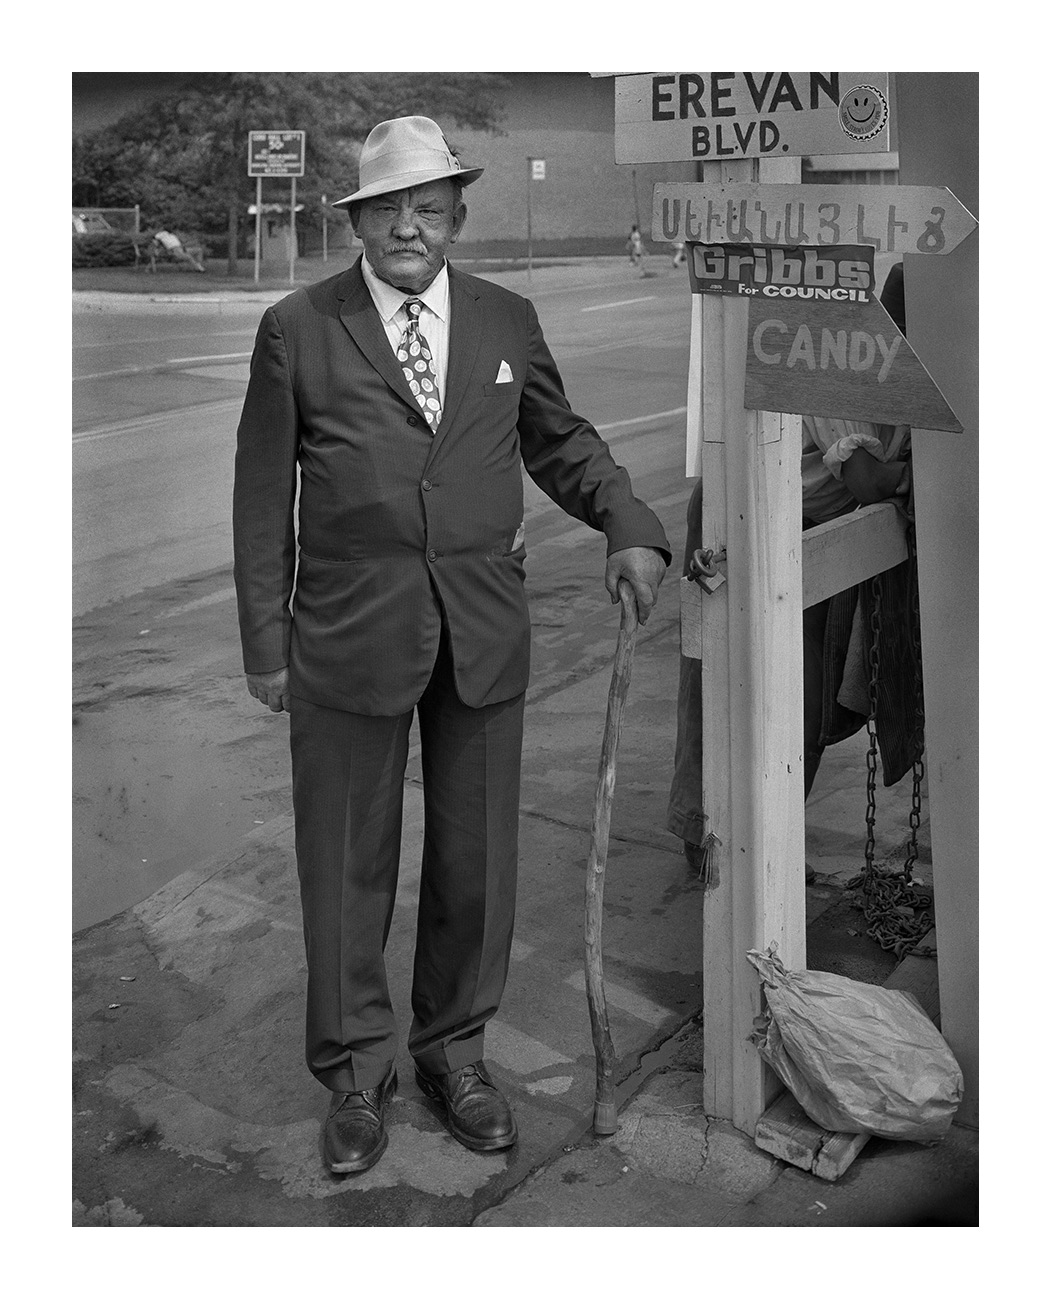 An Elderly Man with a Cane, Detroit 26 Aug 73